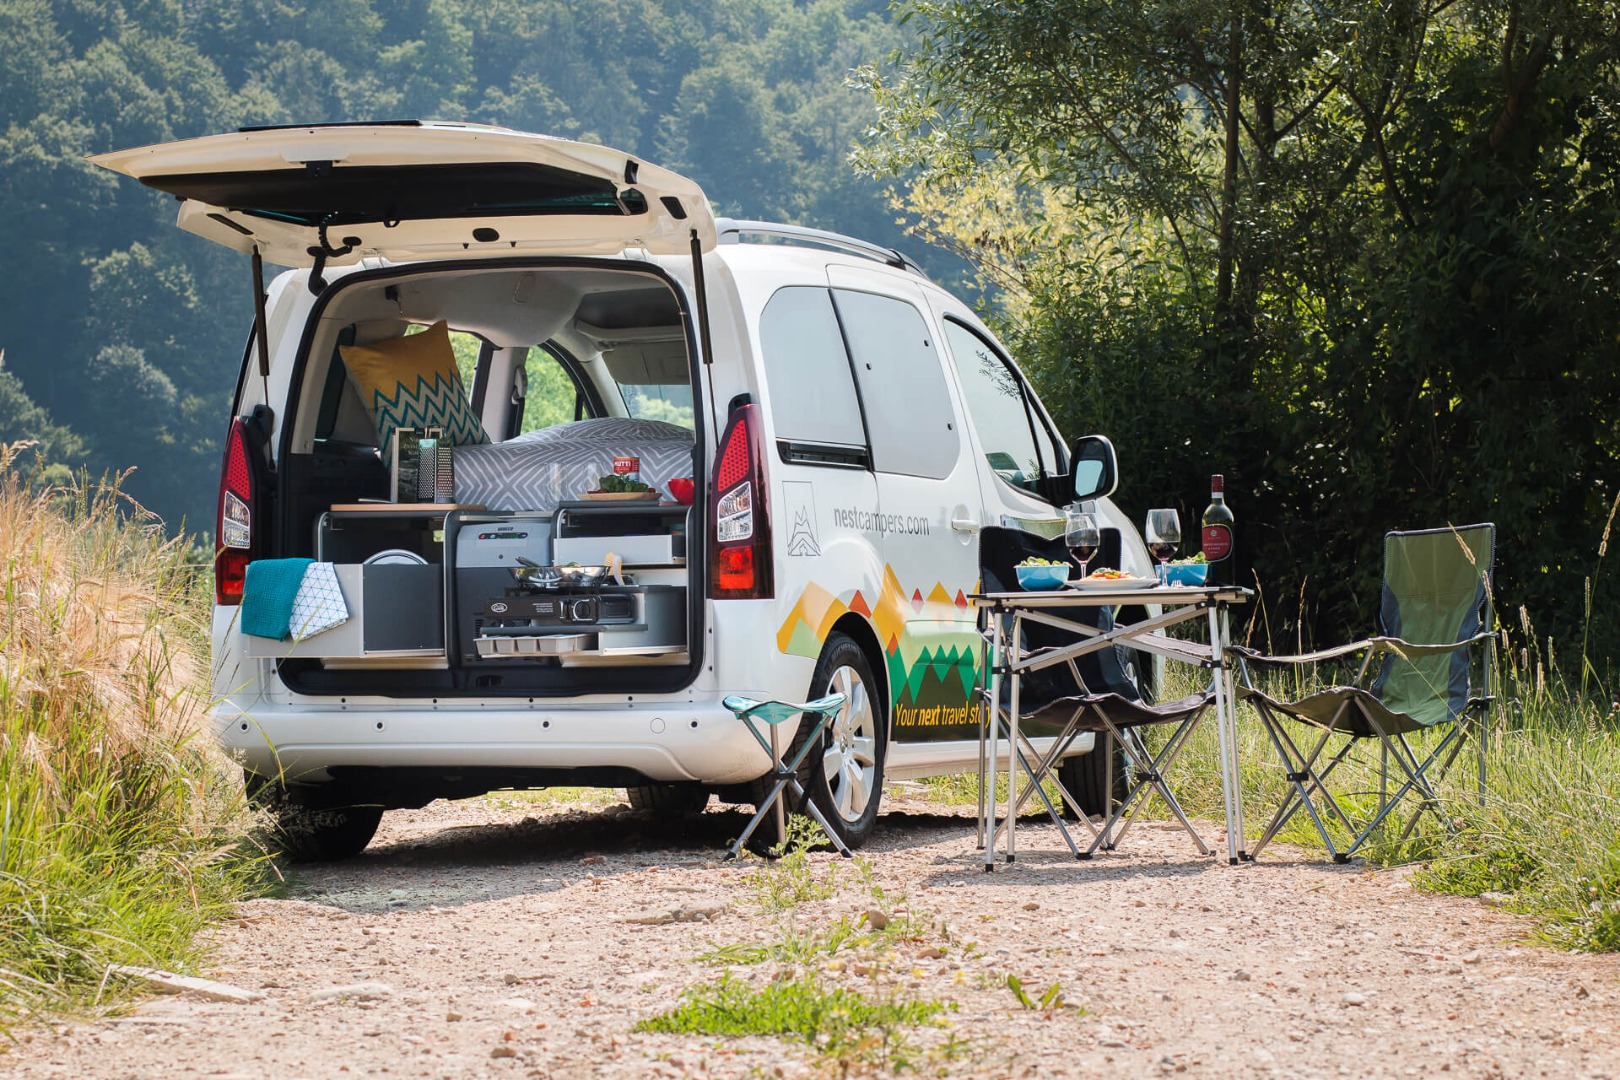 Nest mini-campervan keeps your footprint small and path wide open